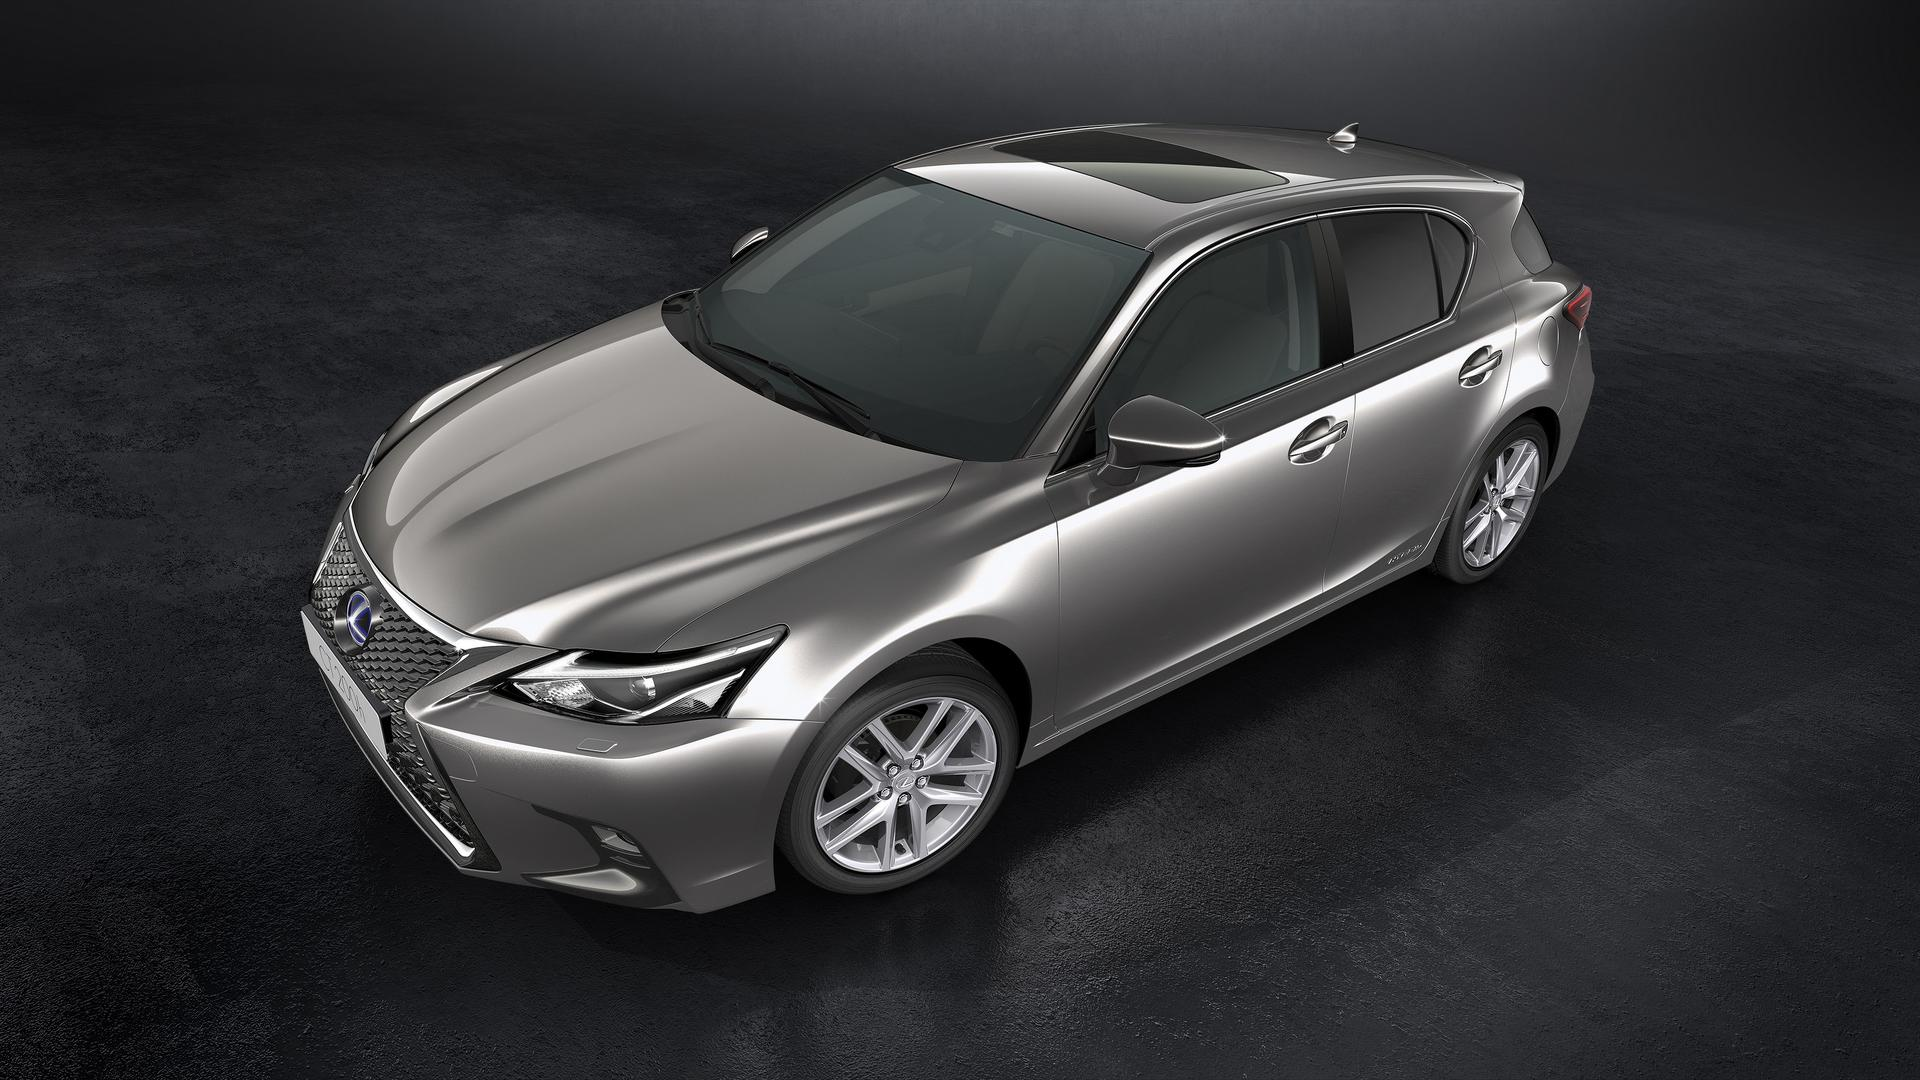 2018 lexus ct200h f sport. perfect sport 2018 lexus ct 200h for lexus ct200h f sport